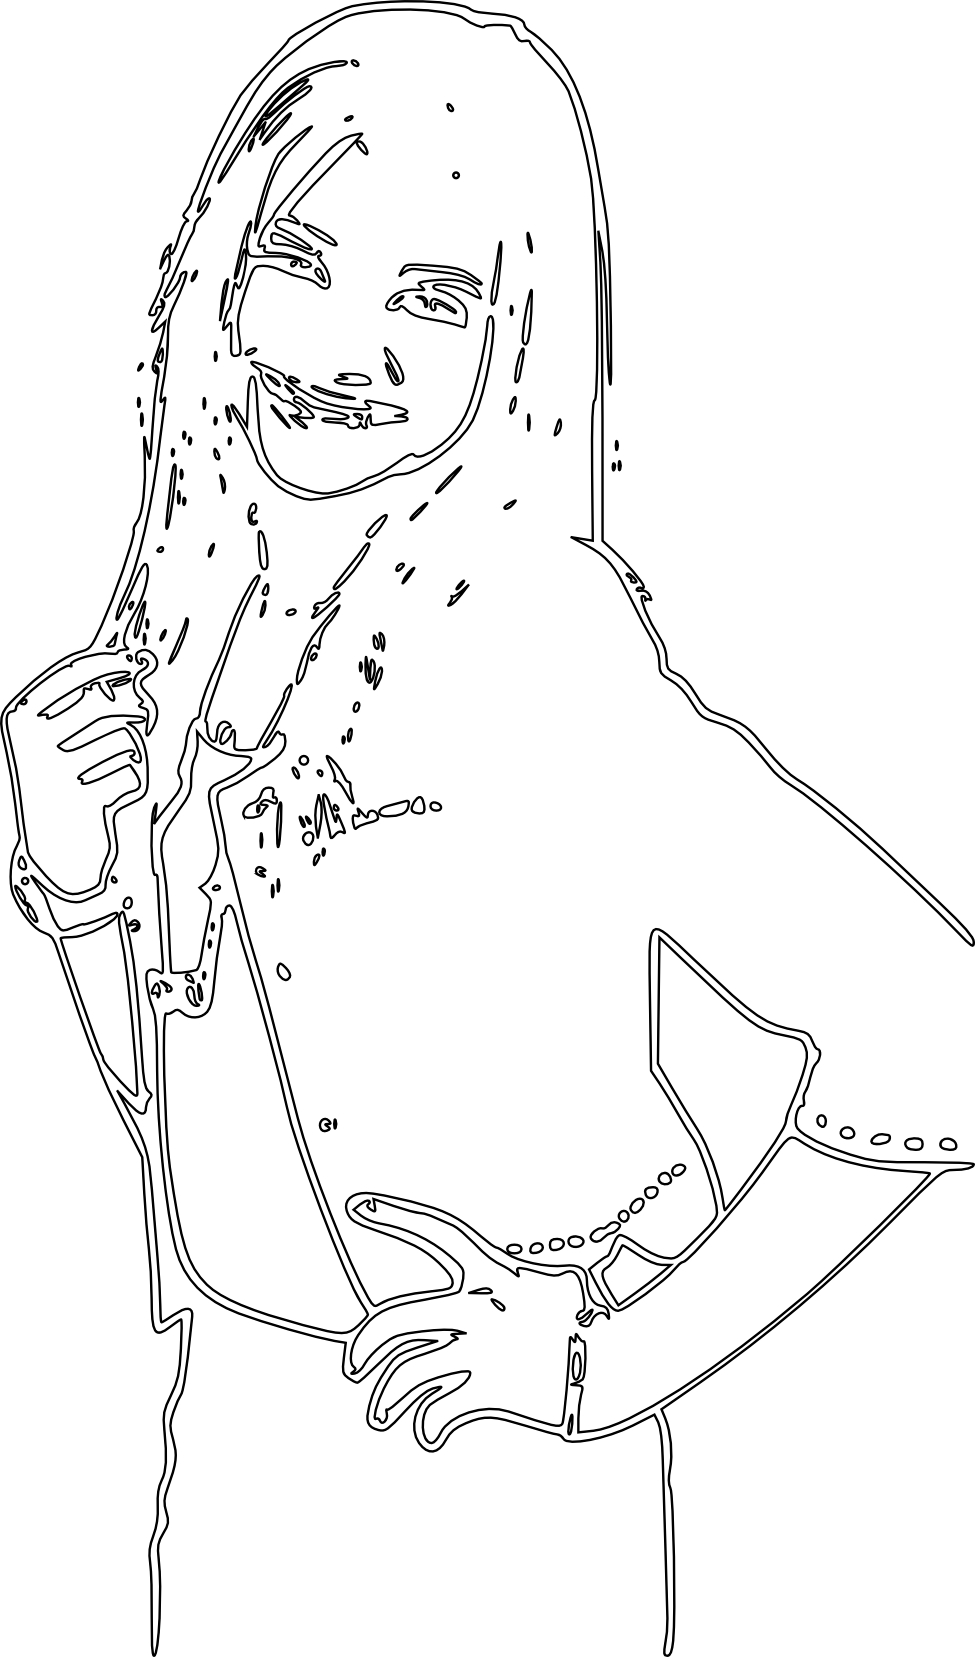 coloring pages of zendaya - photo#12